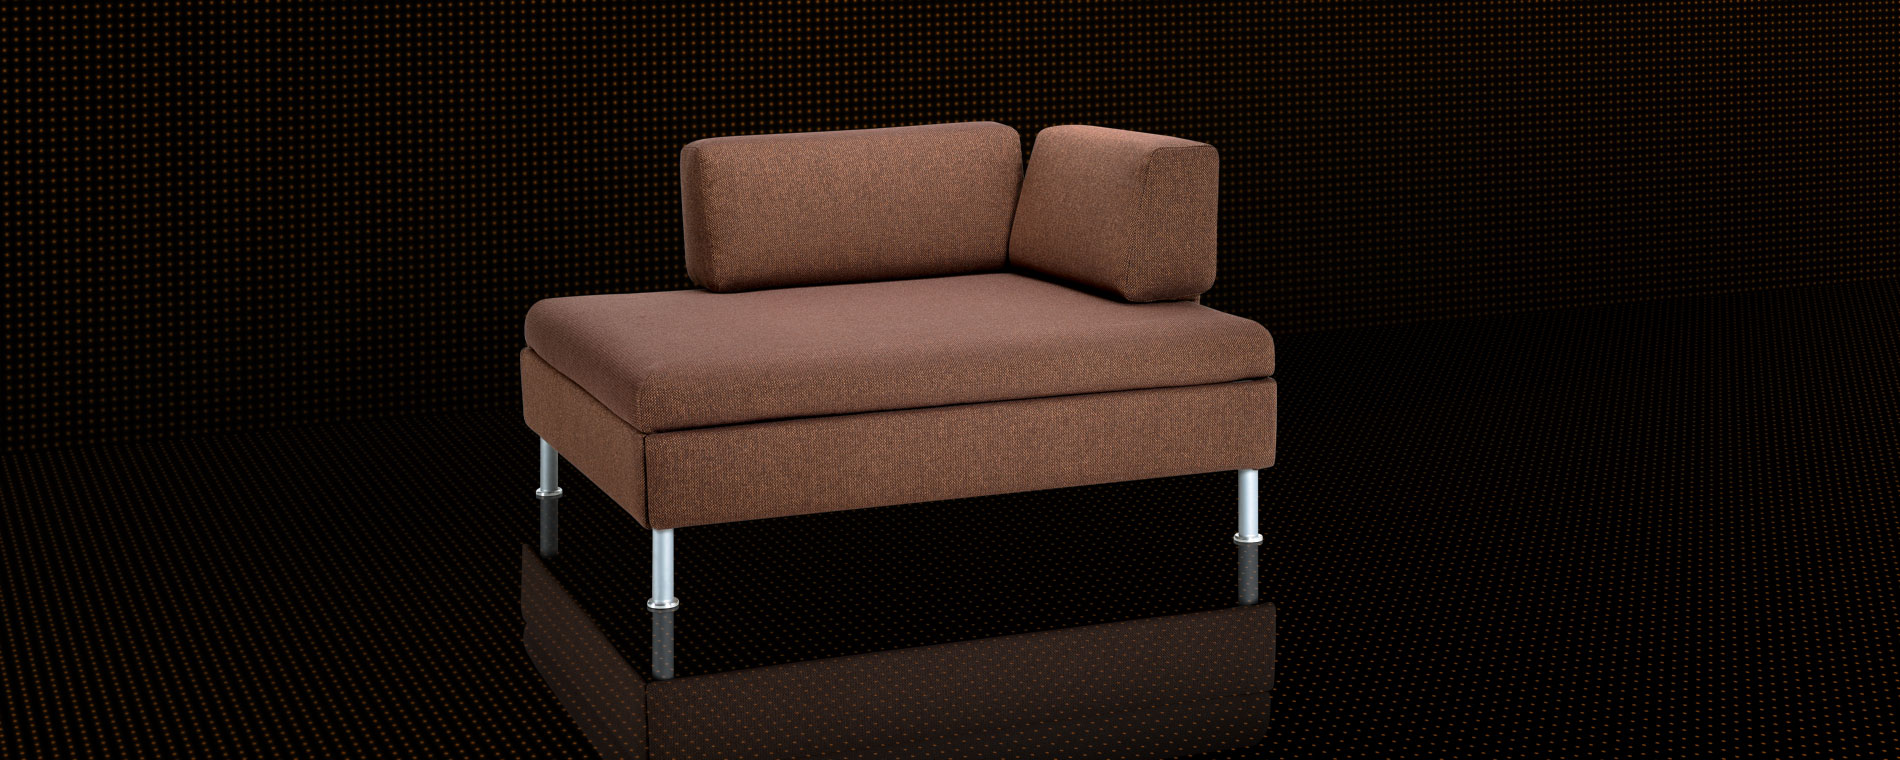 Bettsessel Ausziehbar Bettsofa Design Schlafsofas Made In Switzerland Swiss Plus